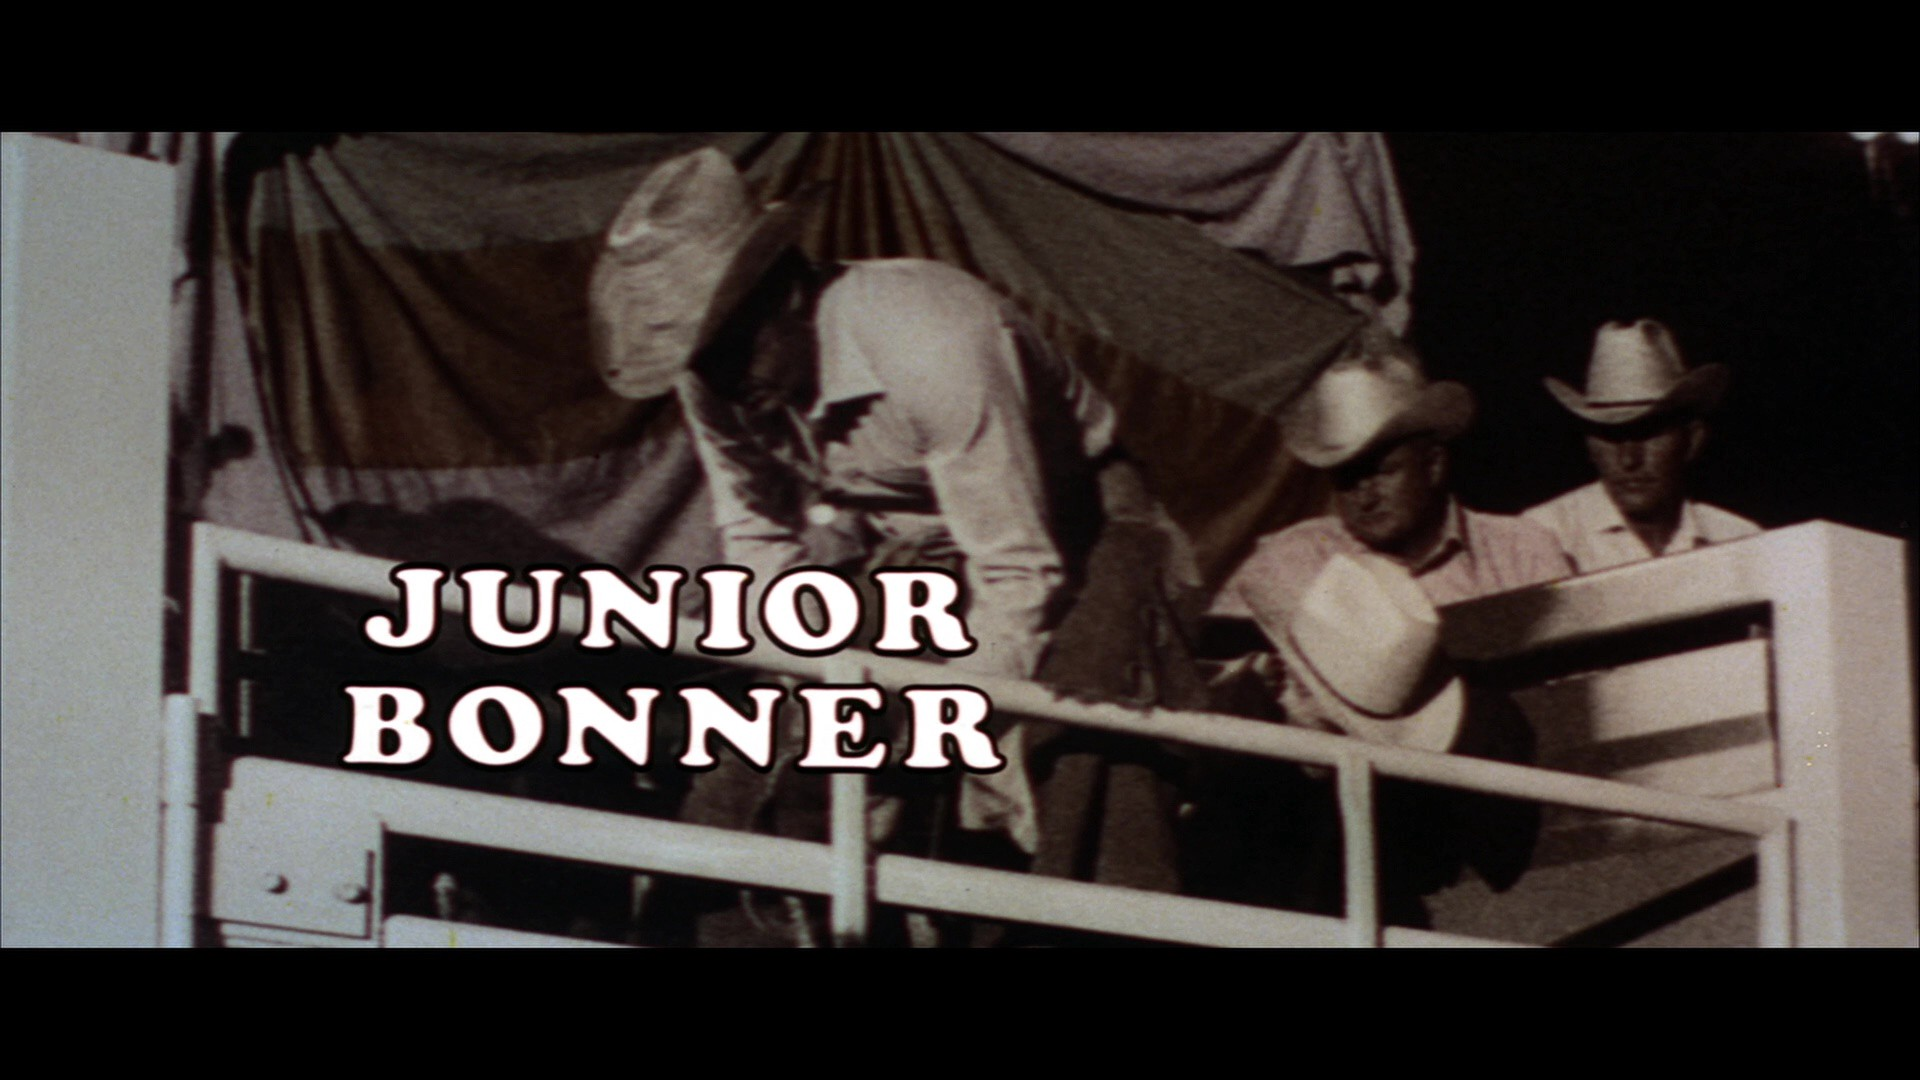 One Last Rodeo with JUNIOR BONNER (1972) - Cinapse